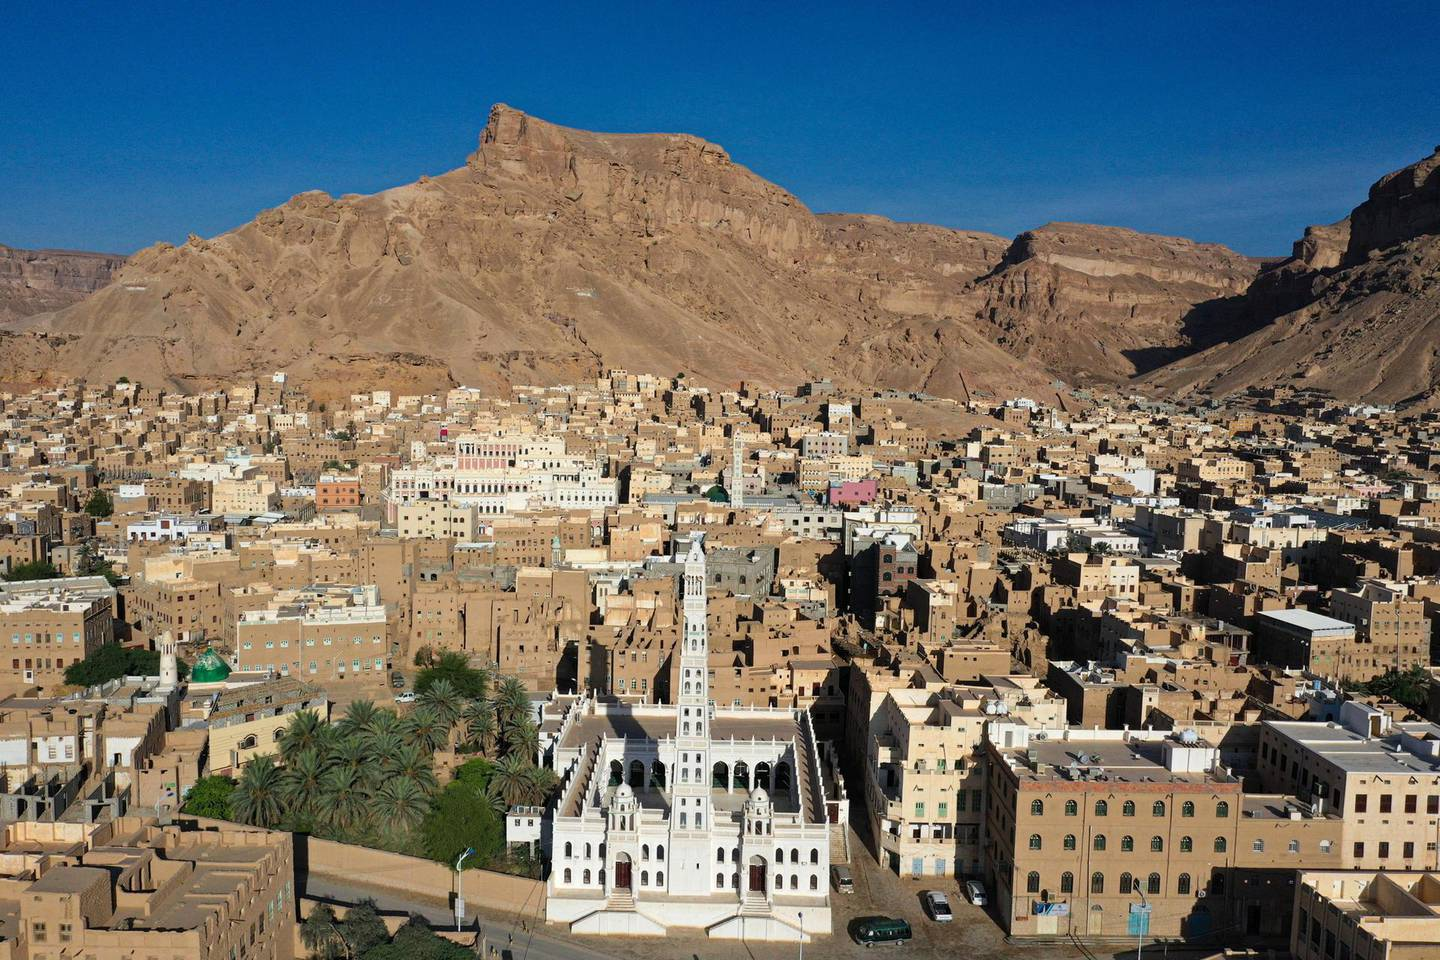 An aerial picture taken on October 8, 2020, shows a view of Tarim city with the Al-Muhdhar Mosque in the forefront, in Yemen's central Hadramawt governorate. (Photo by - / AFP)